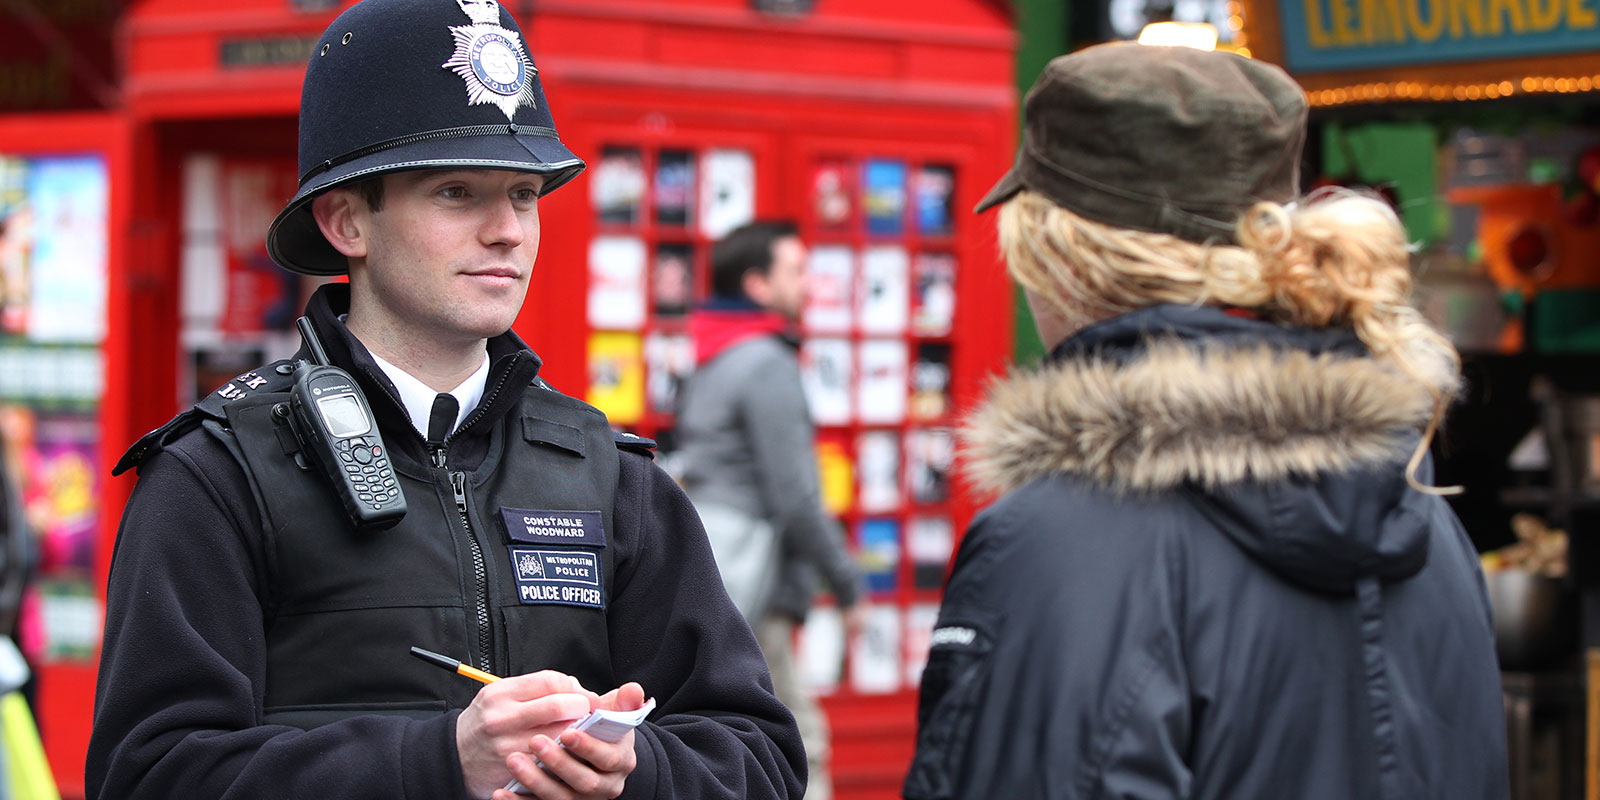 stop and search community monitoring network